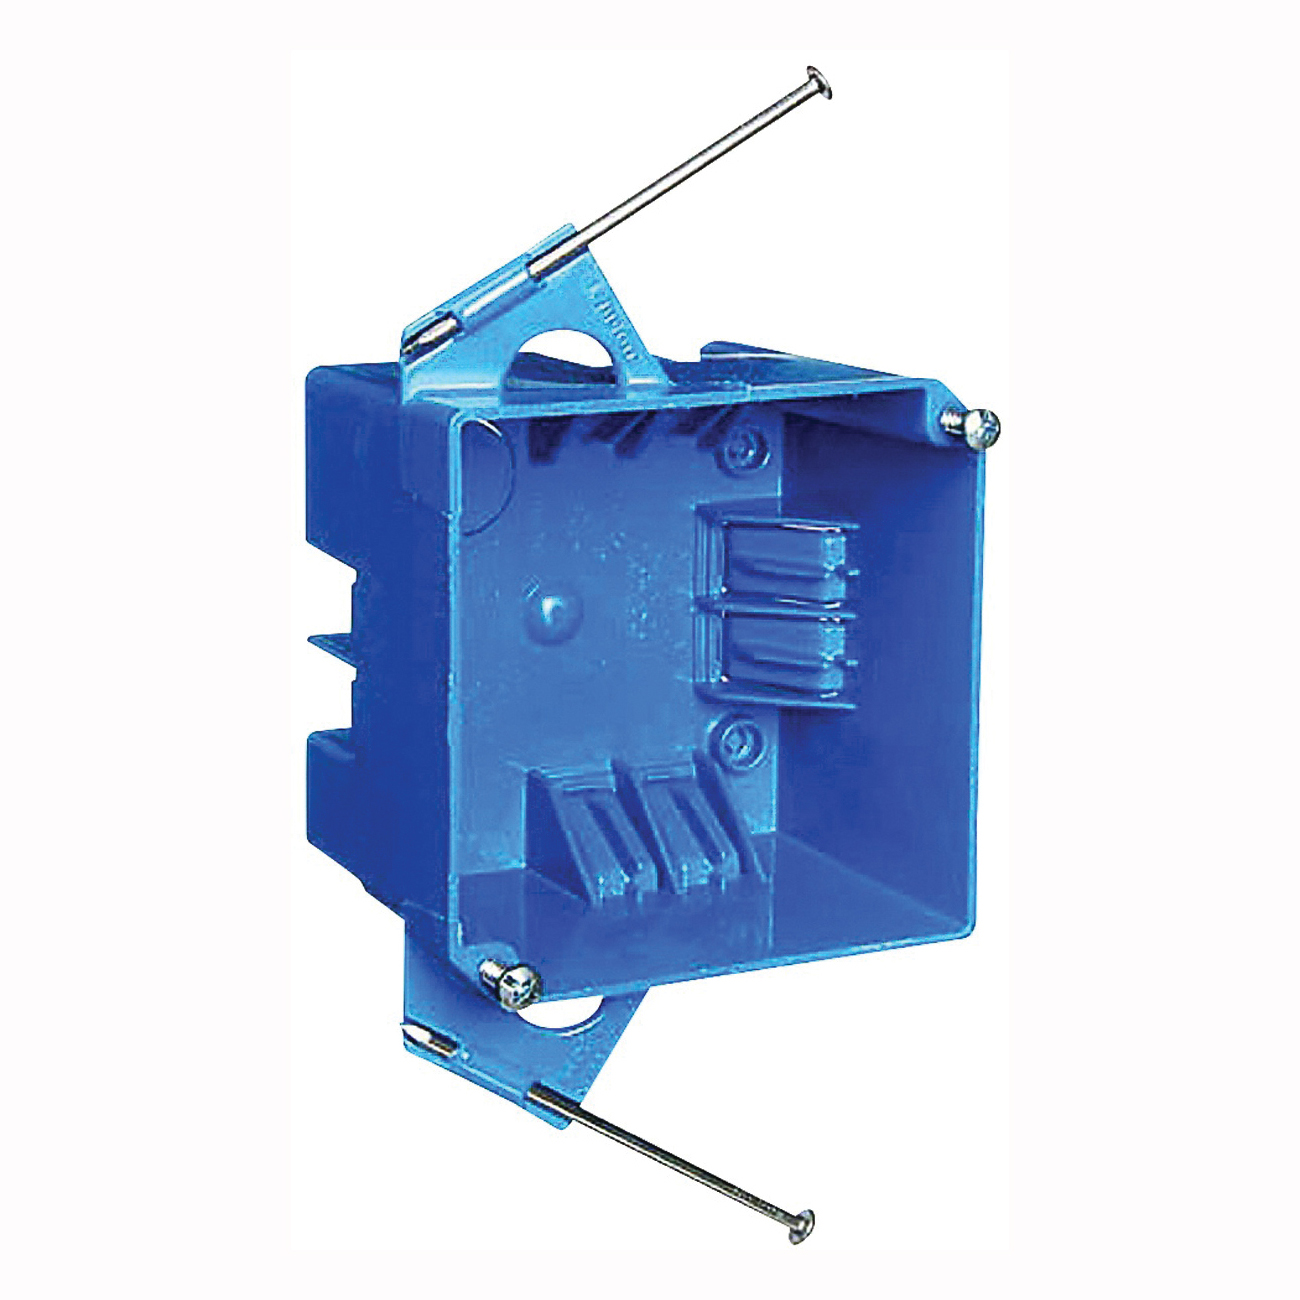 Picture of Carlon B432A-UPC Outlet Box, 4-Gang, Thermoplastic, Blue, Captive Nail Mounting